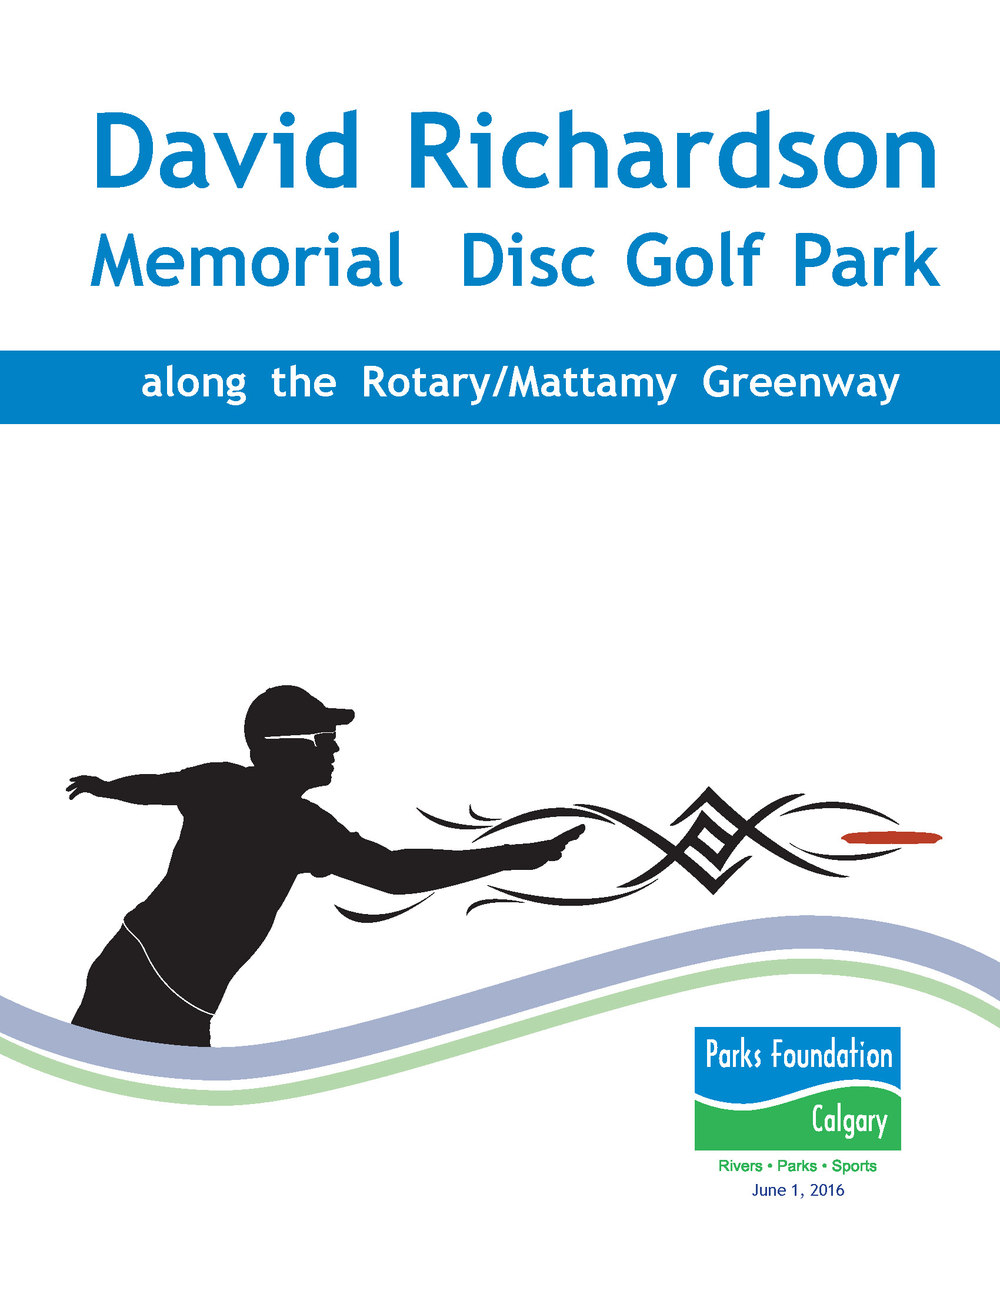 Please see this brochure for more information on the park and items available for sponsorship.